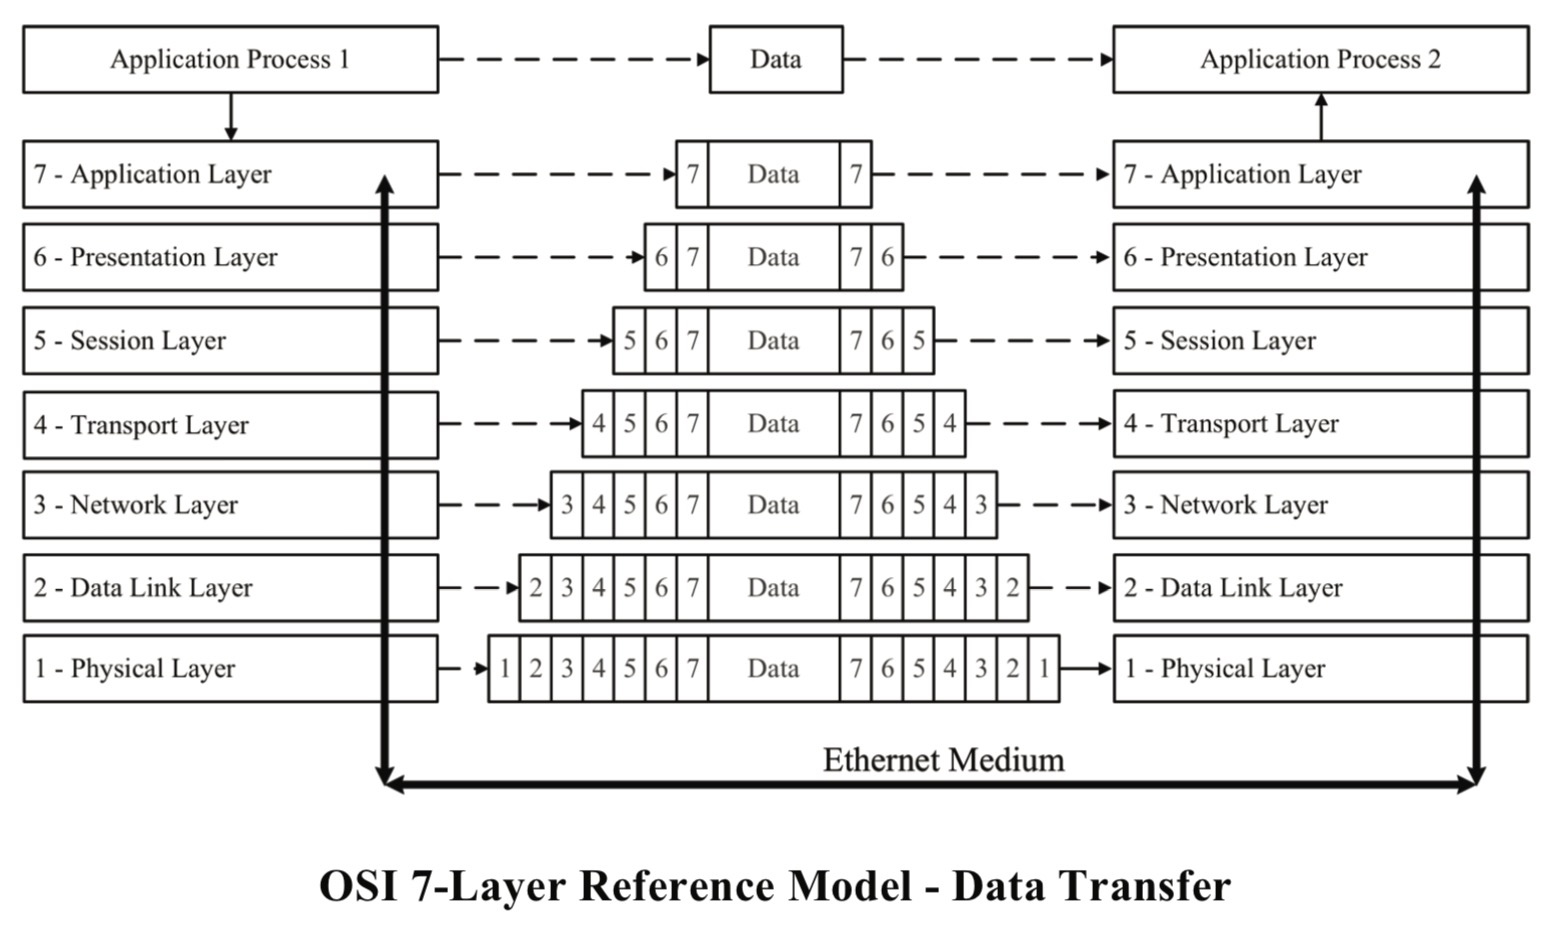 OSI 7-Layer Reference Model - Data Transfer